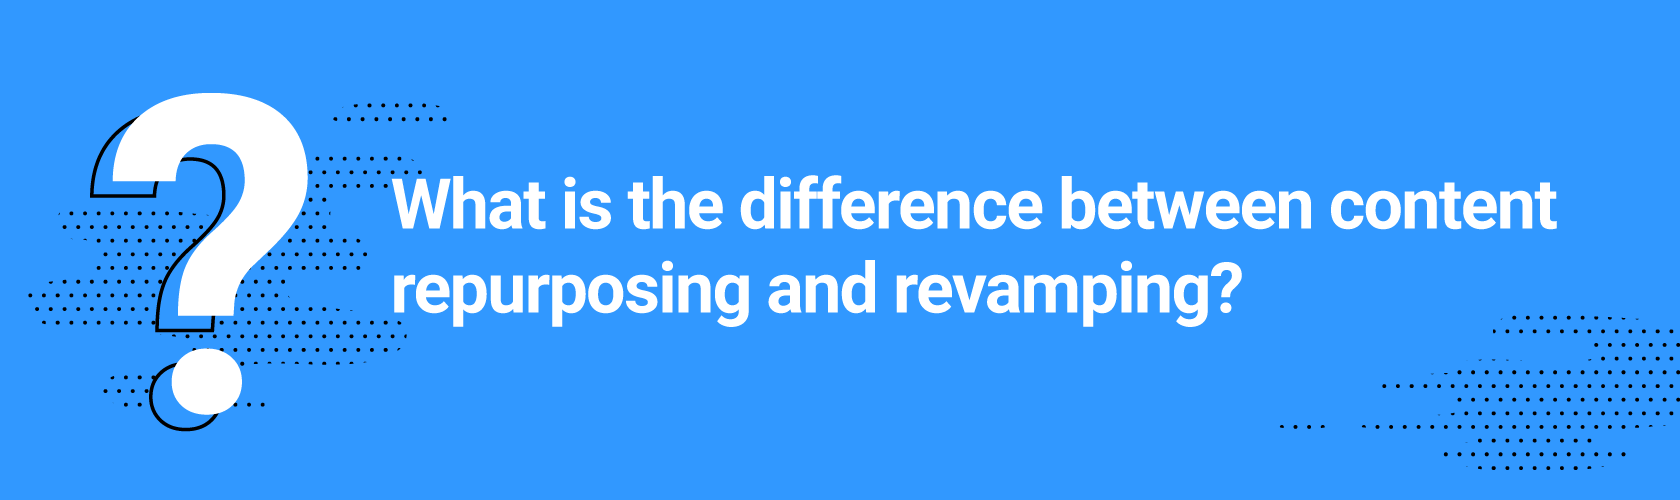 What is the difference between content repurposing and revamping?